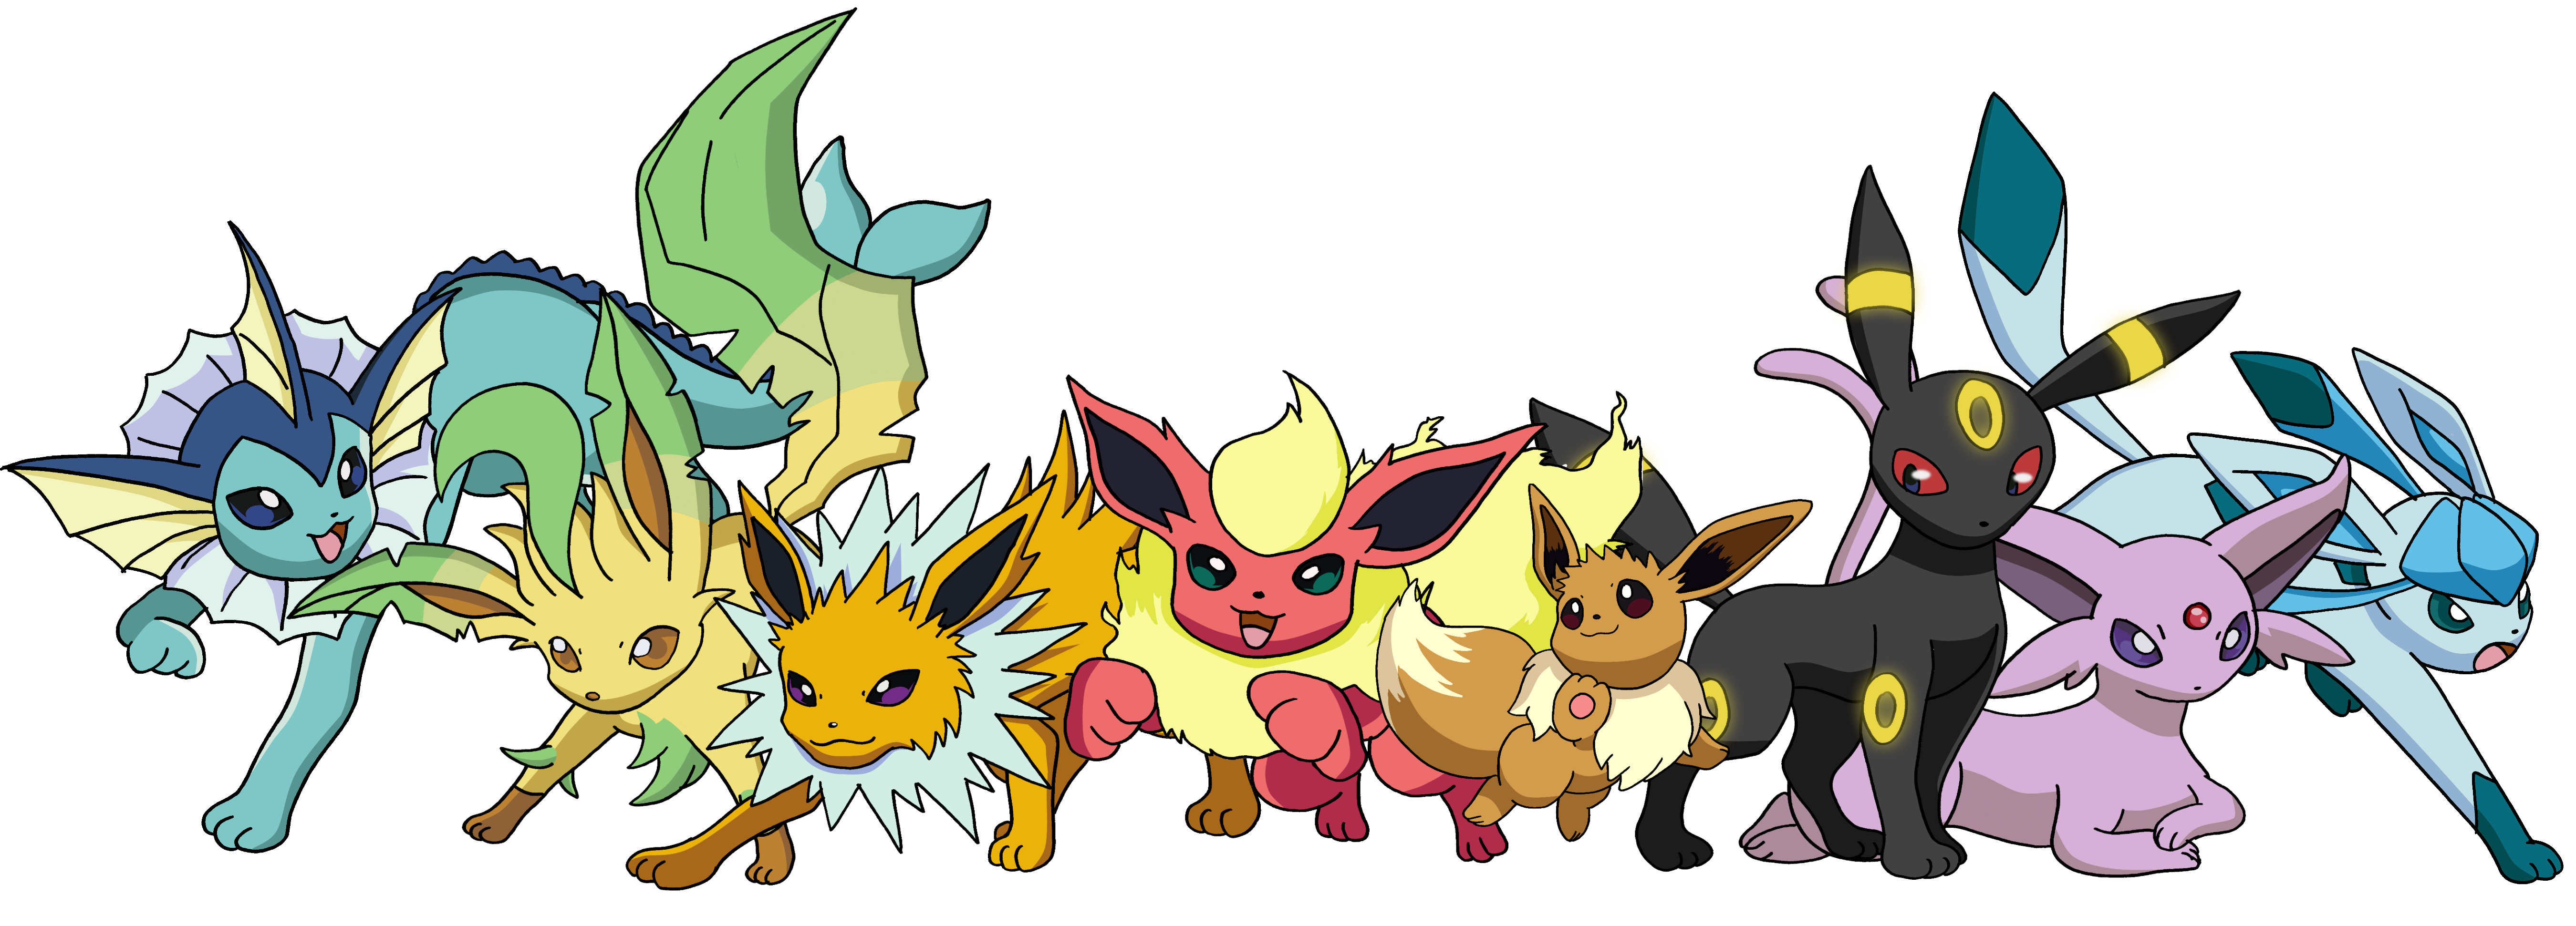 Pokemon clipart animation. Here are all gen